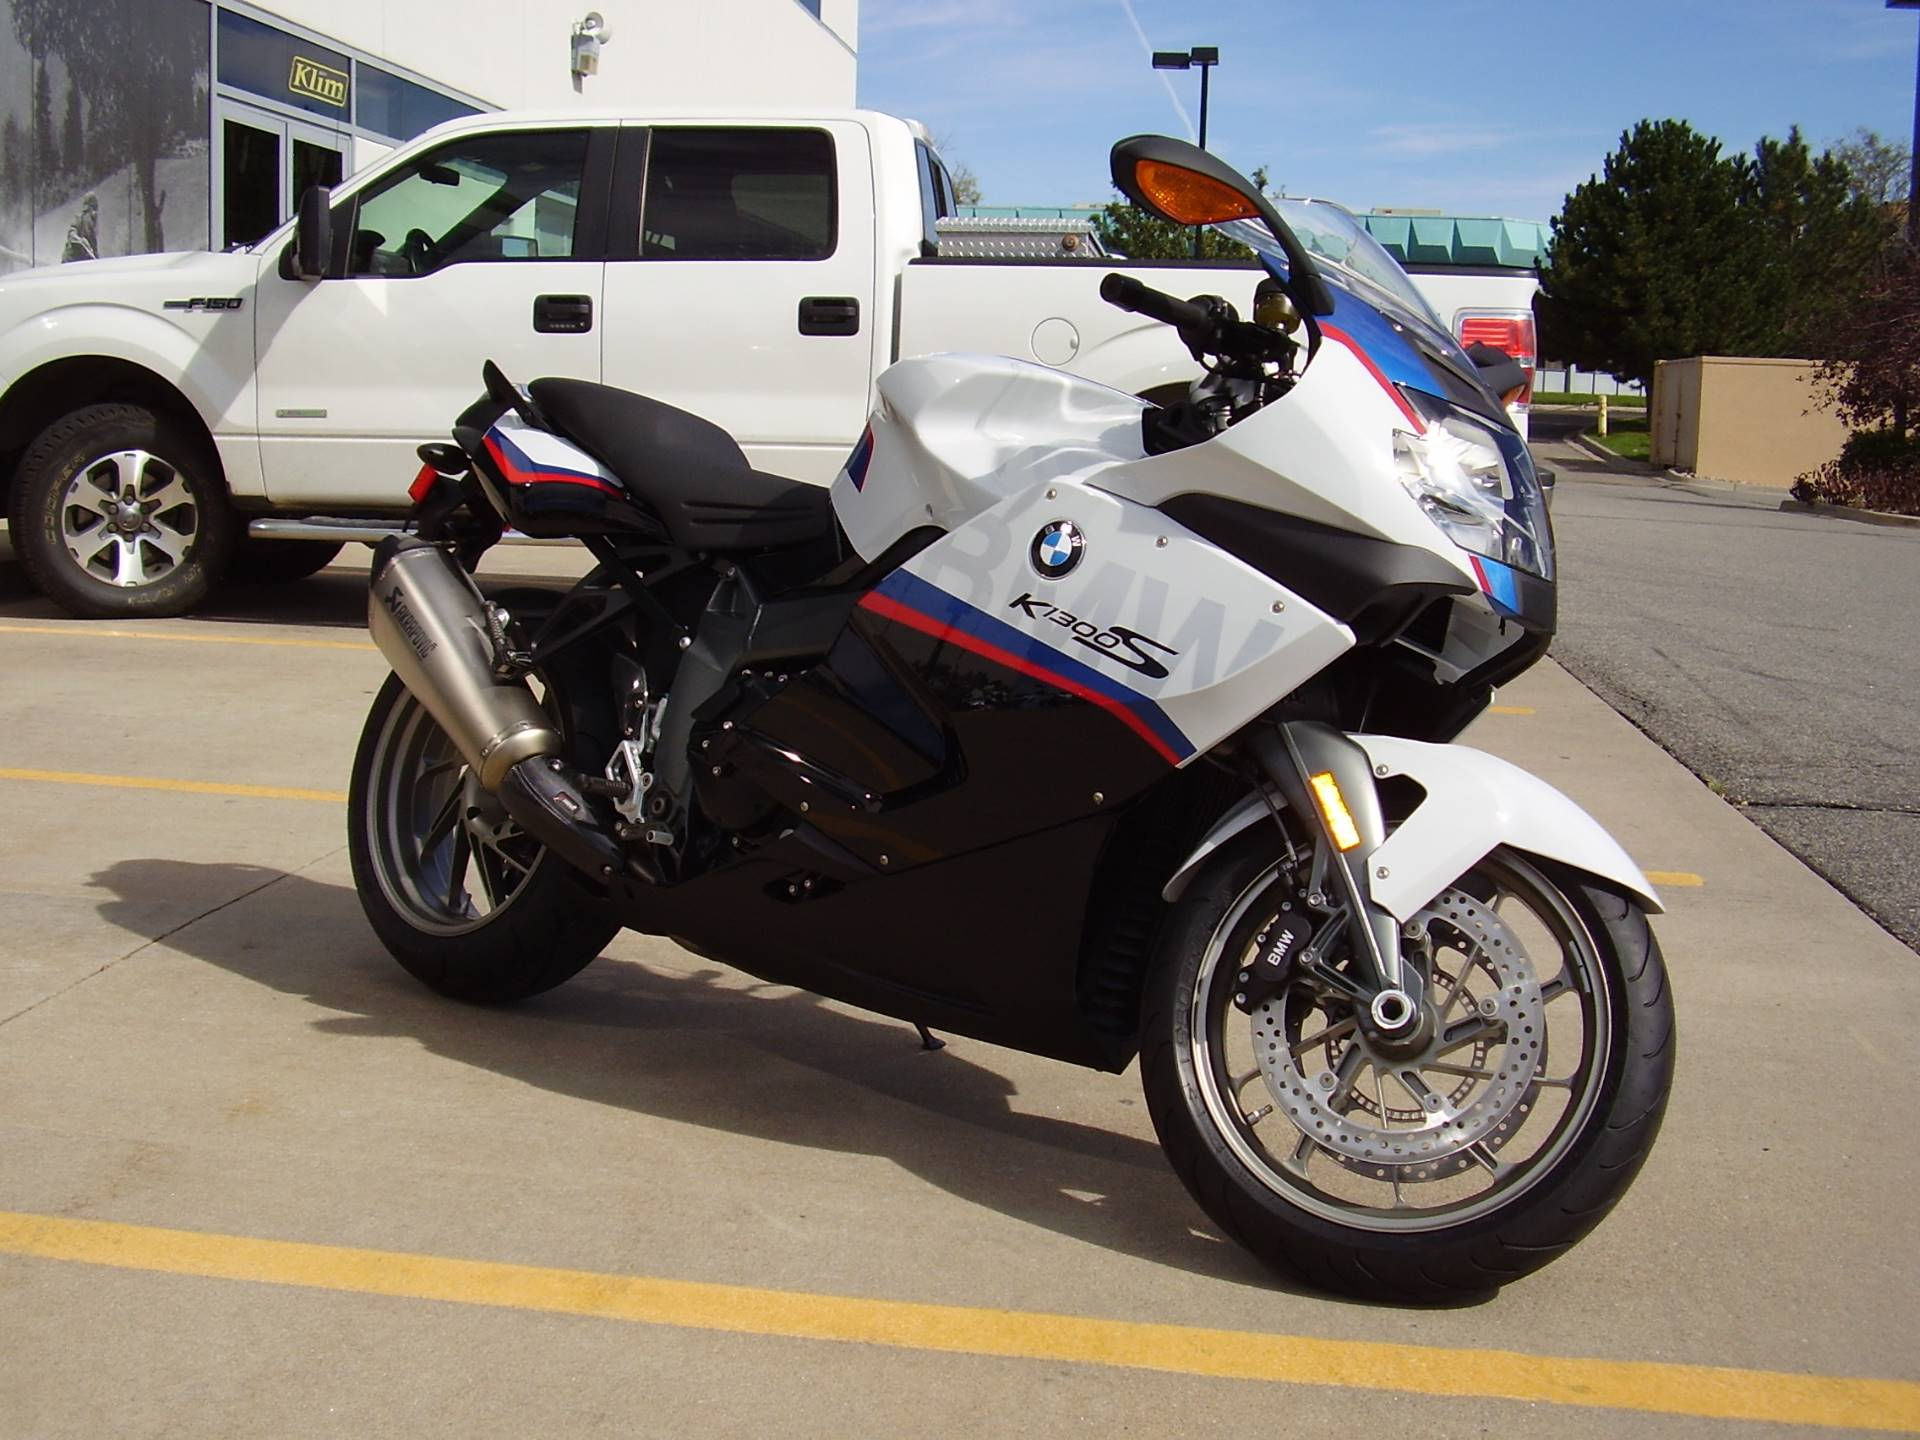 2016 BMW K 1300 S in Centennial, Colorado - Photo 4